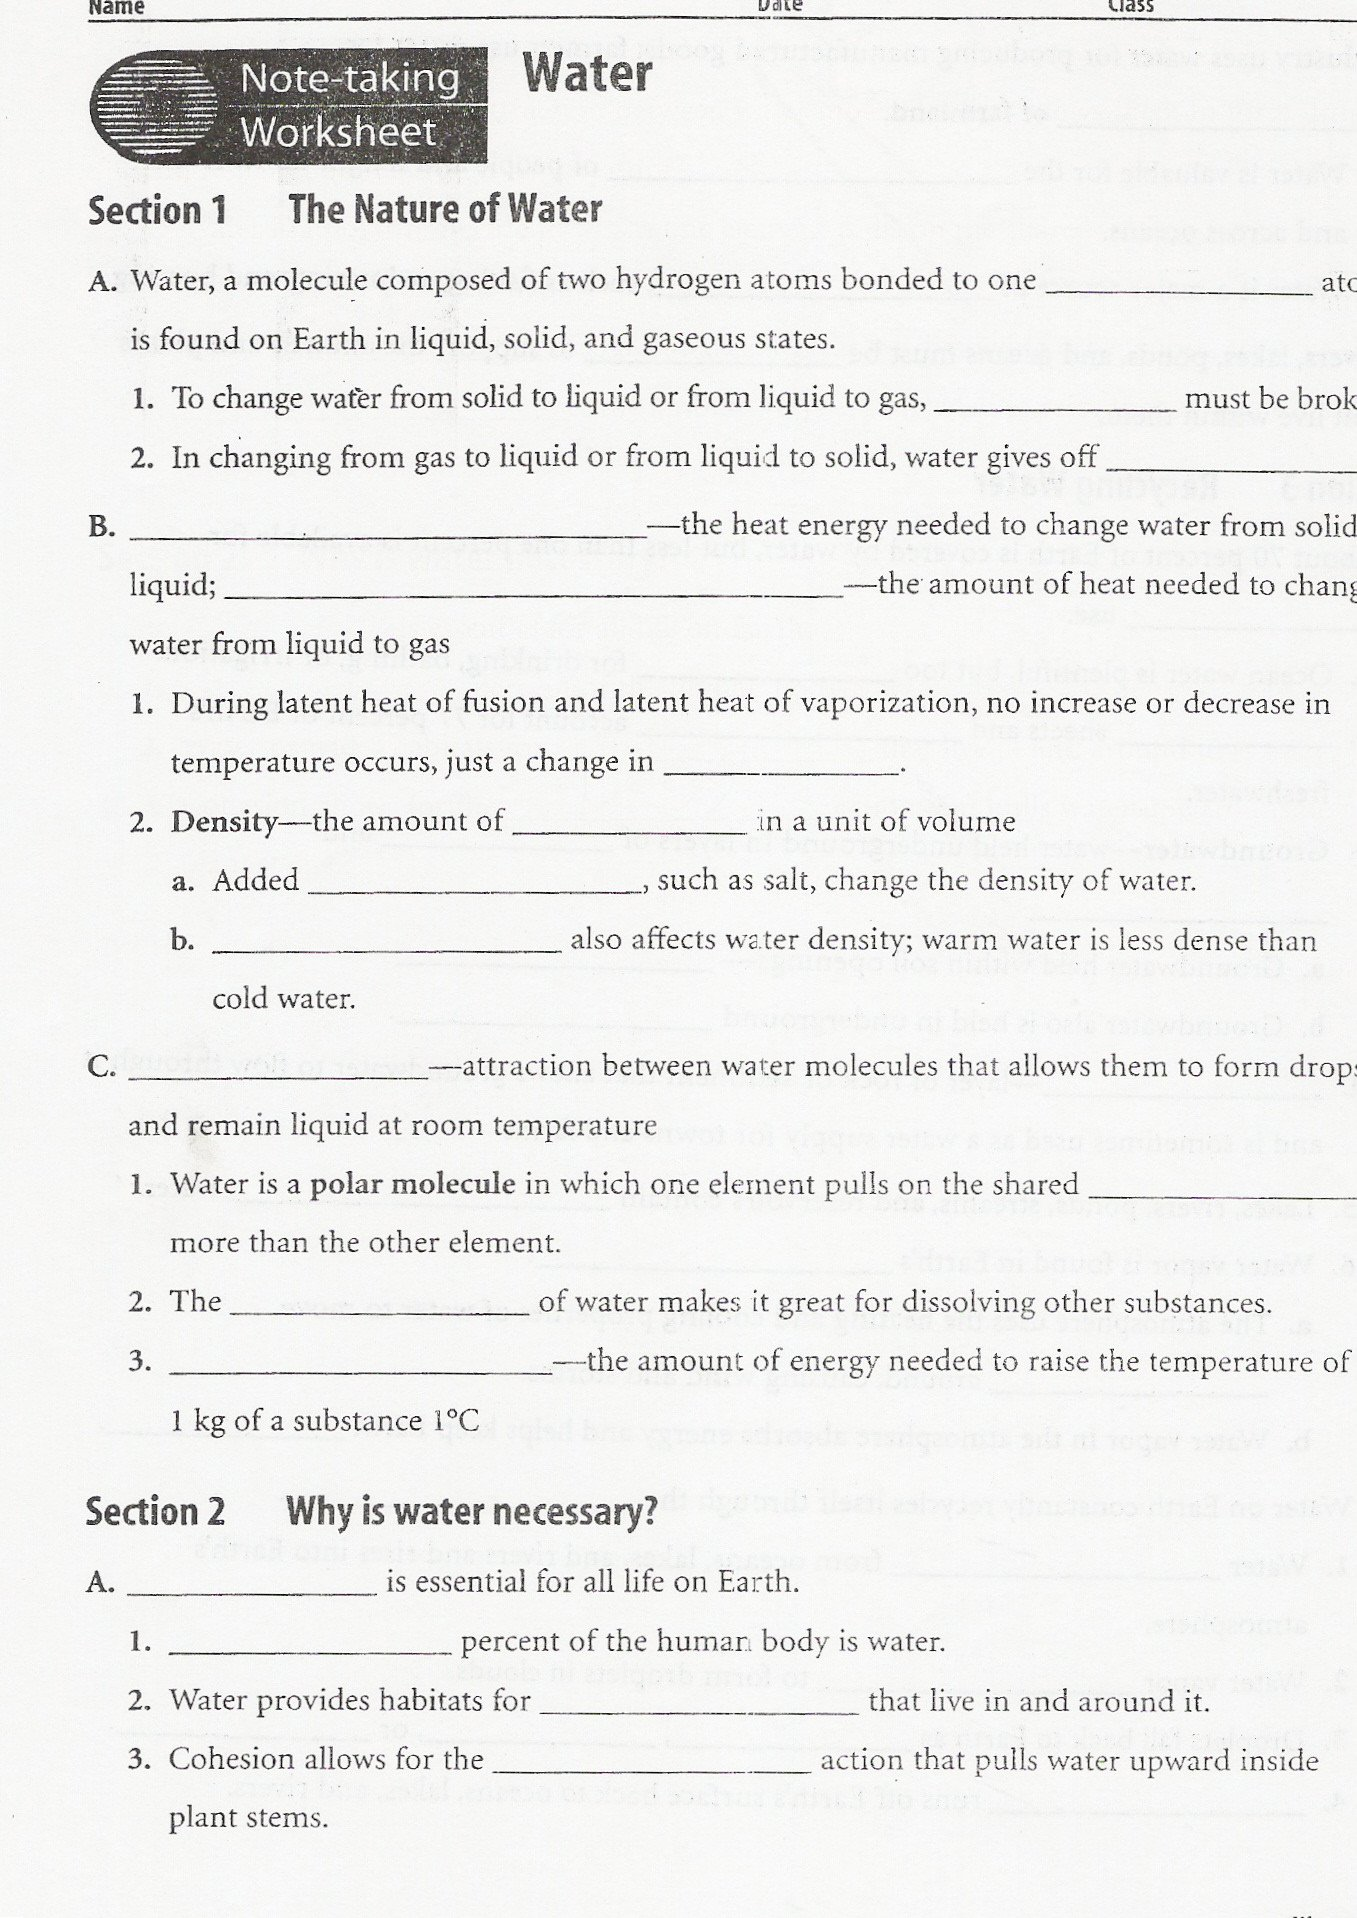 Science Fusion Grade 3 Worksheets Moral Science Worksheet for Grade 3